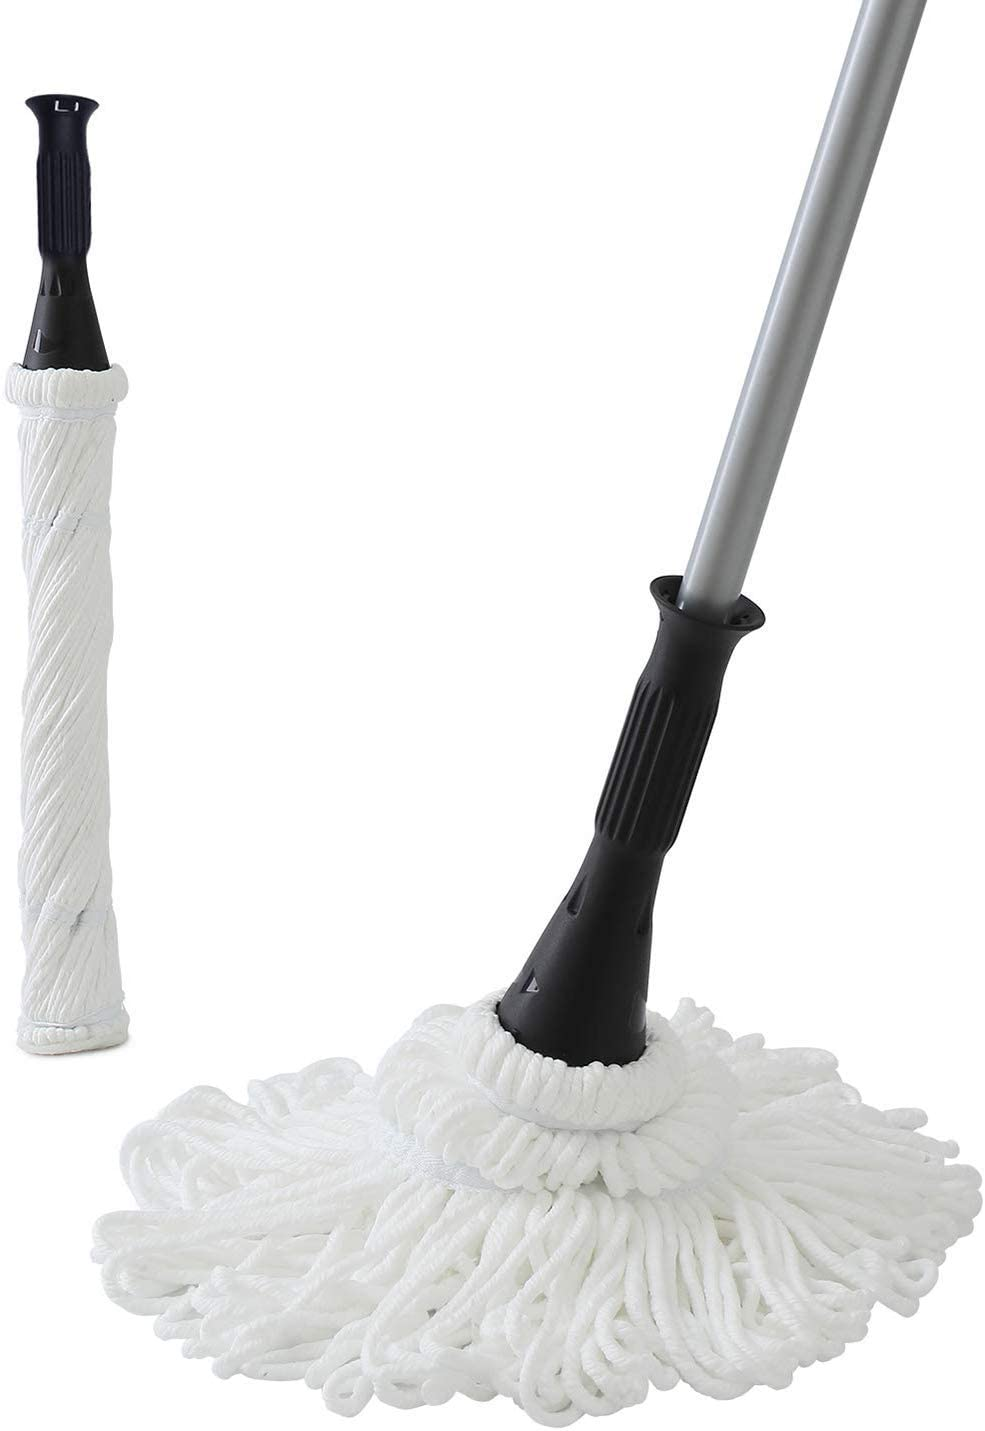 Eyliden Microfiber Twist Mop Silver 57.5 Inches Dust Mops Washing Mop Hand Release Floor Cleaning with 2 Removable Washable Heads Product and Packaging Upgrade